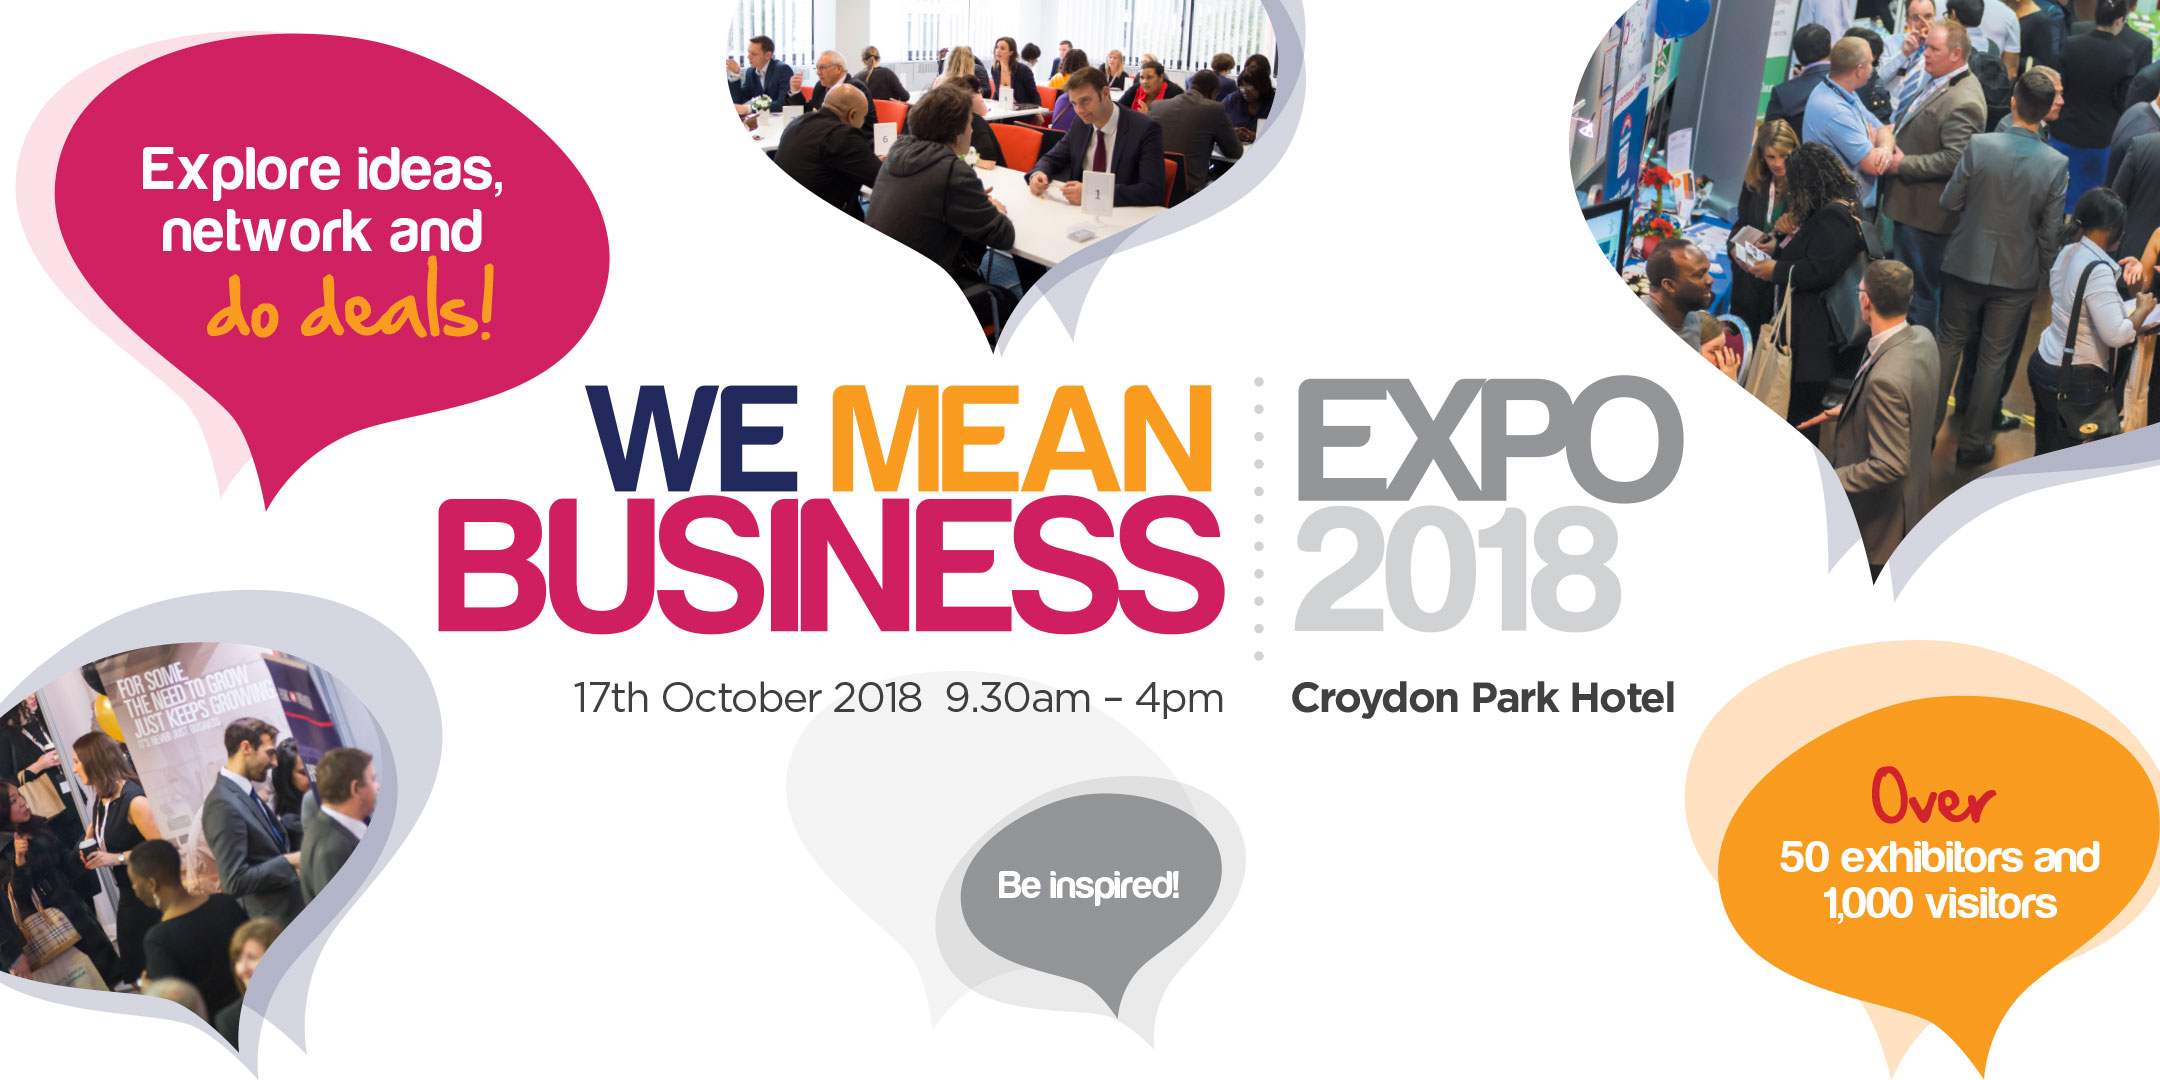 We Mean Business Expo 2018